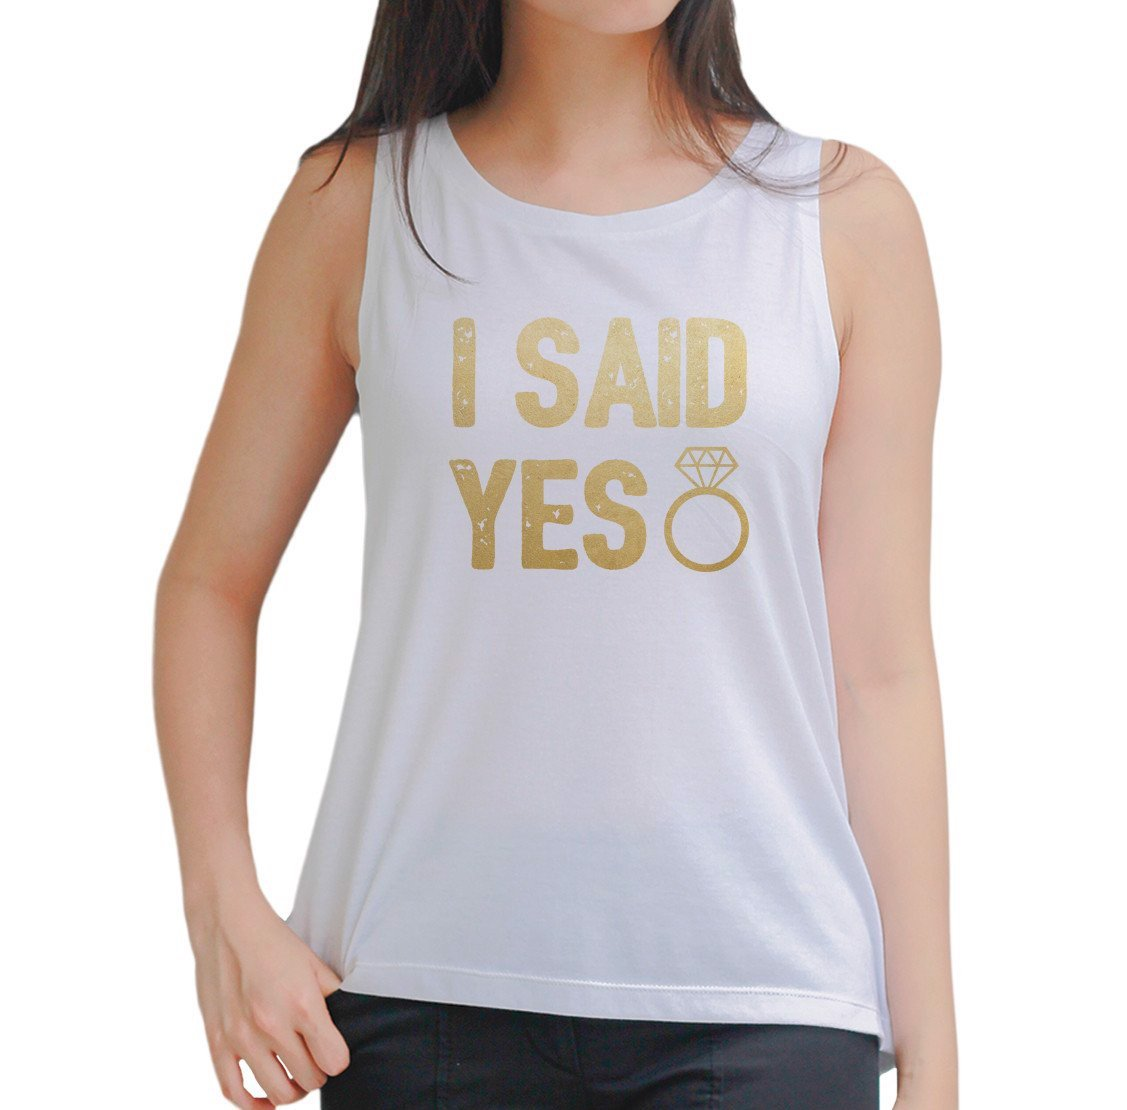 That's what she said Tank Top